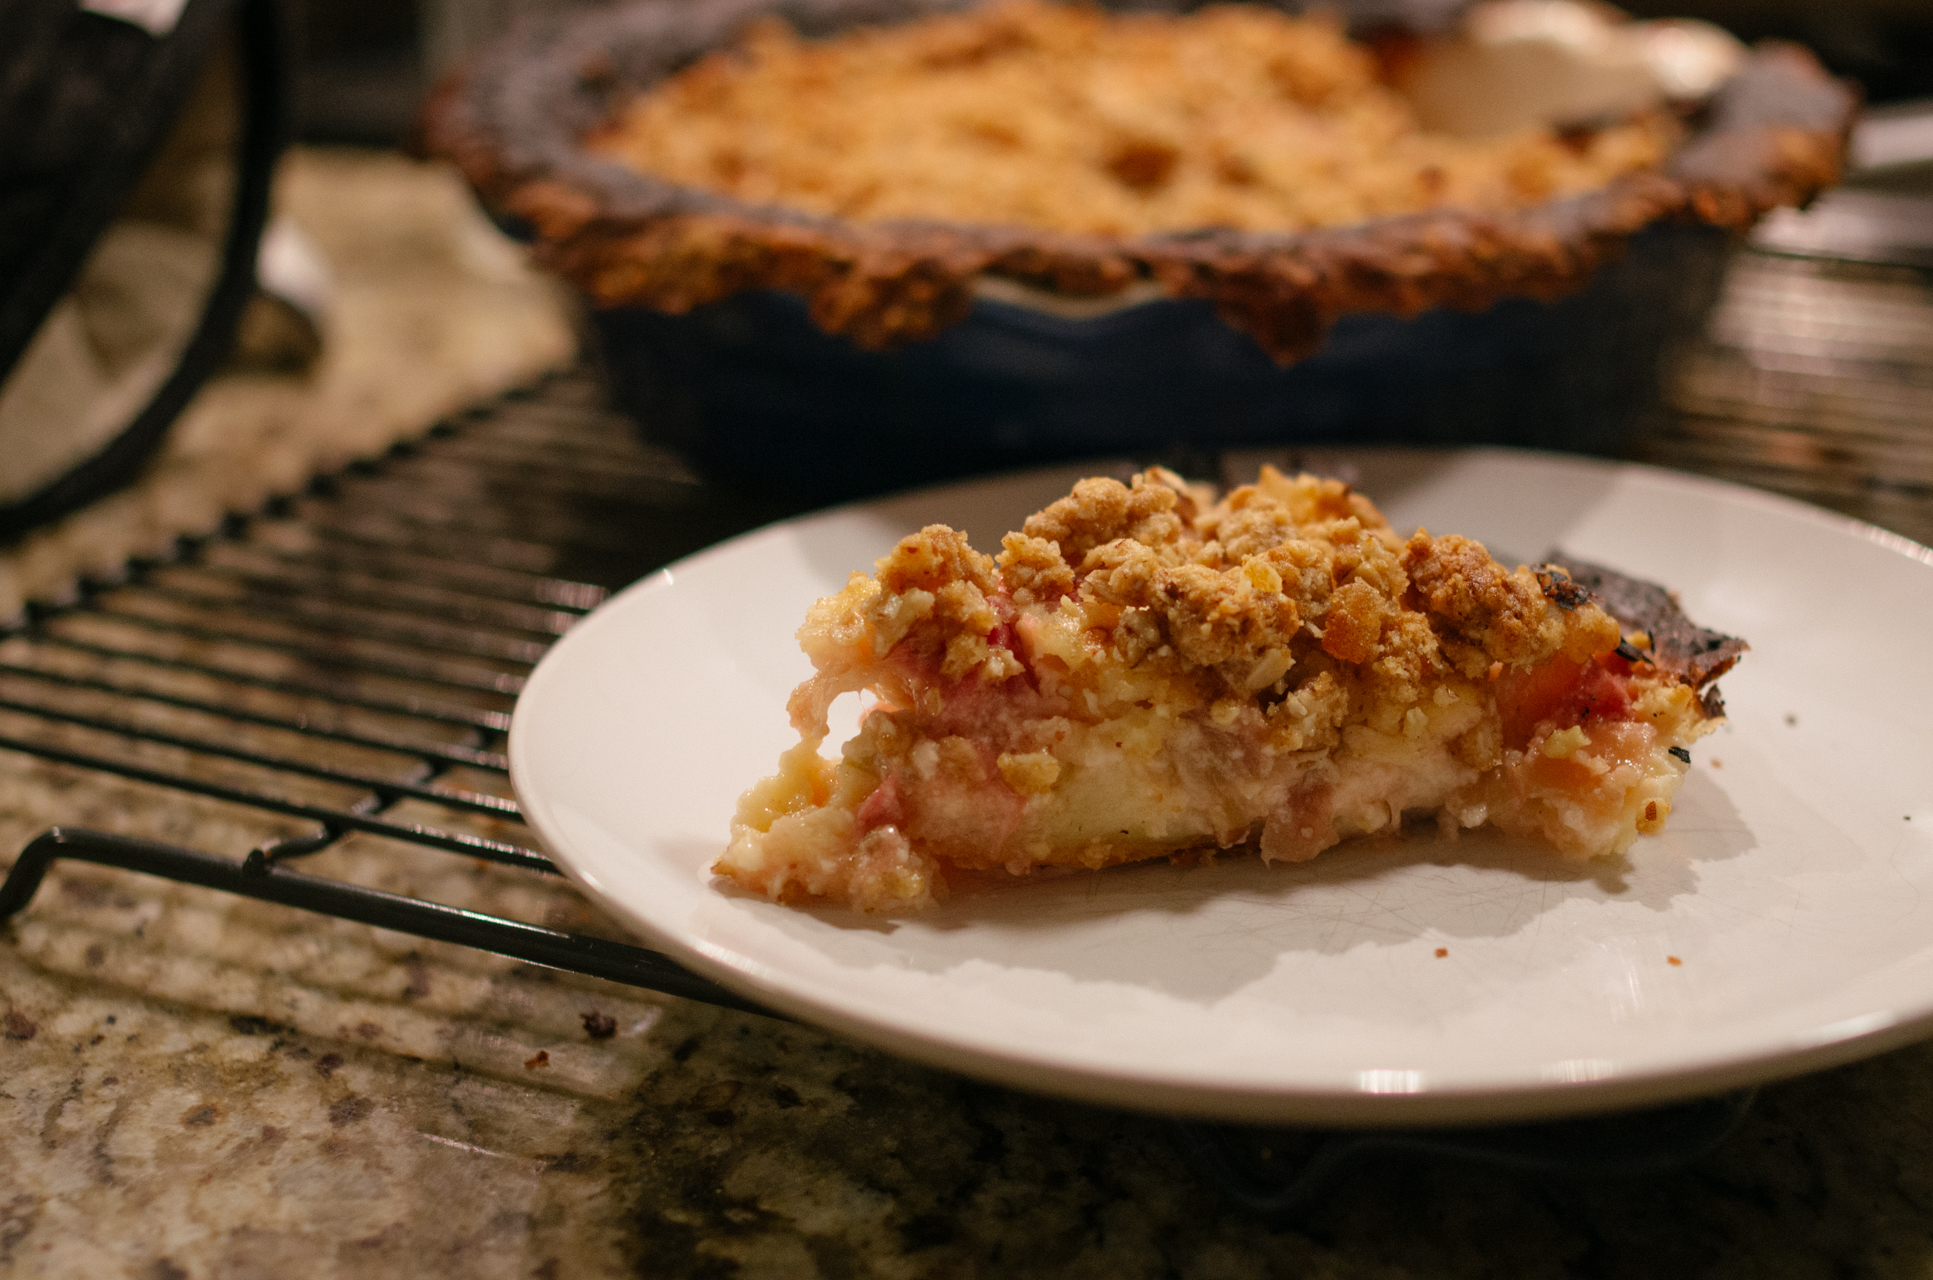 "Sour Cream Rhubarb Pie with Ginger-Pecan Streusel:  The note in the book says ""new fave fruit pie"". It's true. I am not a huge fan of fruit pies, even though I enjoy baking them, but I loved this. I was a bit nervous about the streusel, being that I am also not a huge fan of nuts, but it's so good and goes perfectly with the pie. The pie itself, my god! I had quite the adventure attempting to partially blind-bake the pie crust, and then burned the top of the crust in an oven mishap. It's fine! The pie was still so good! I love the custardy filling that goes over the rhubarb. I'm gonna go get a slice right now, actually."